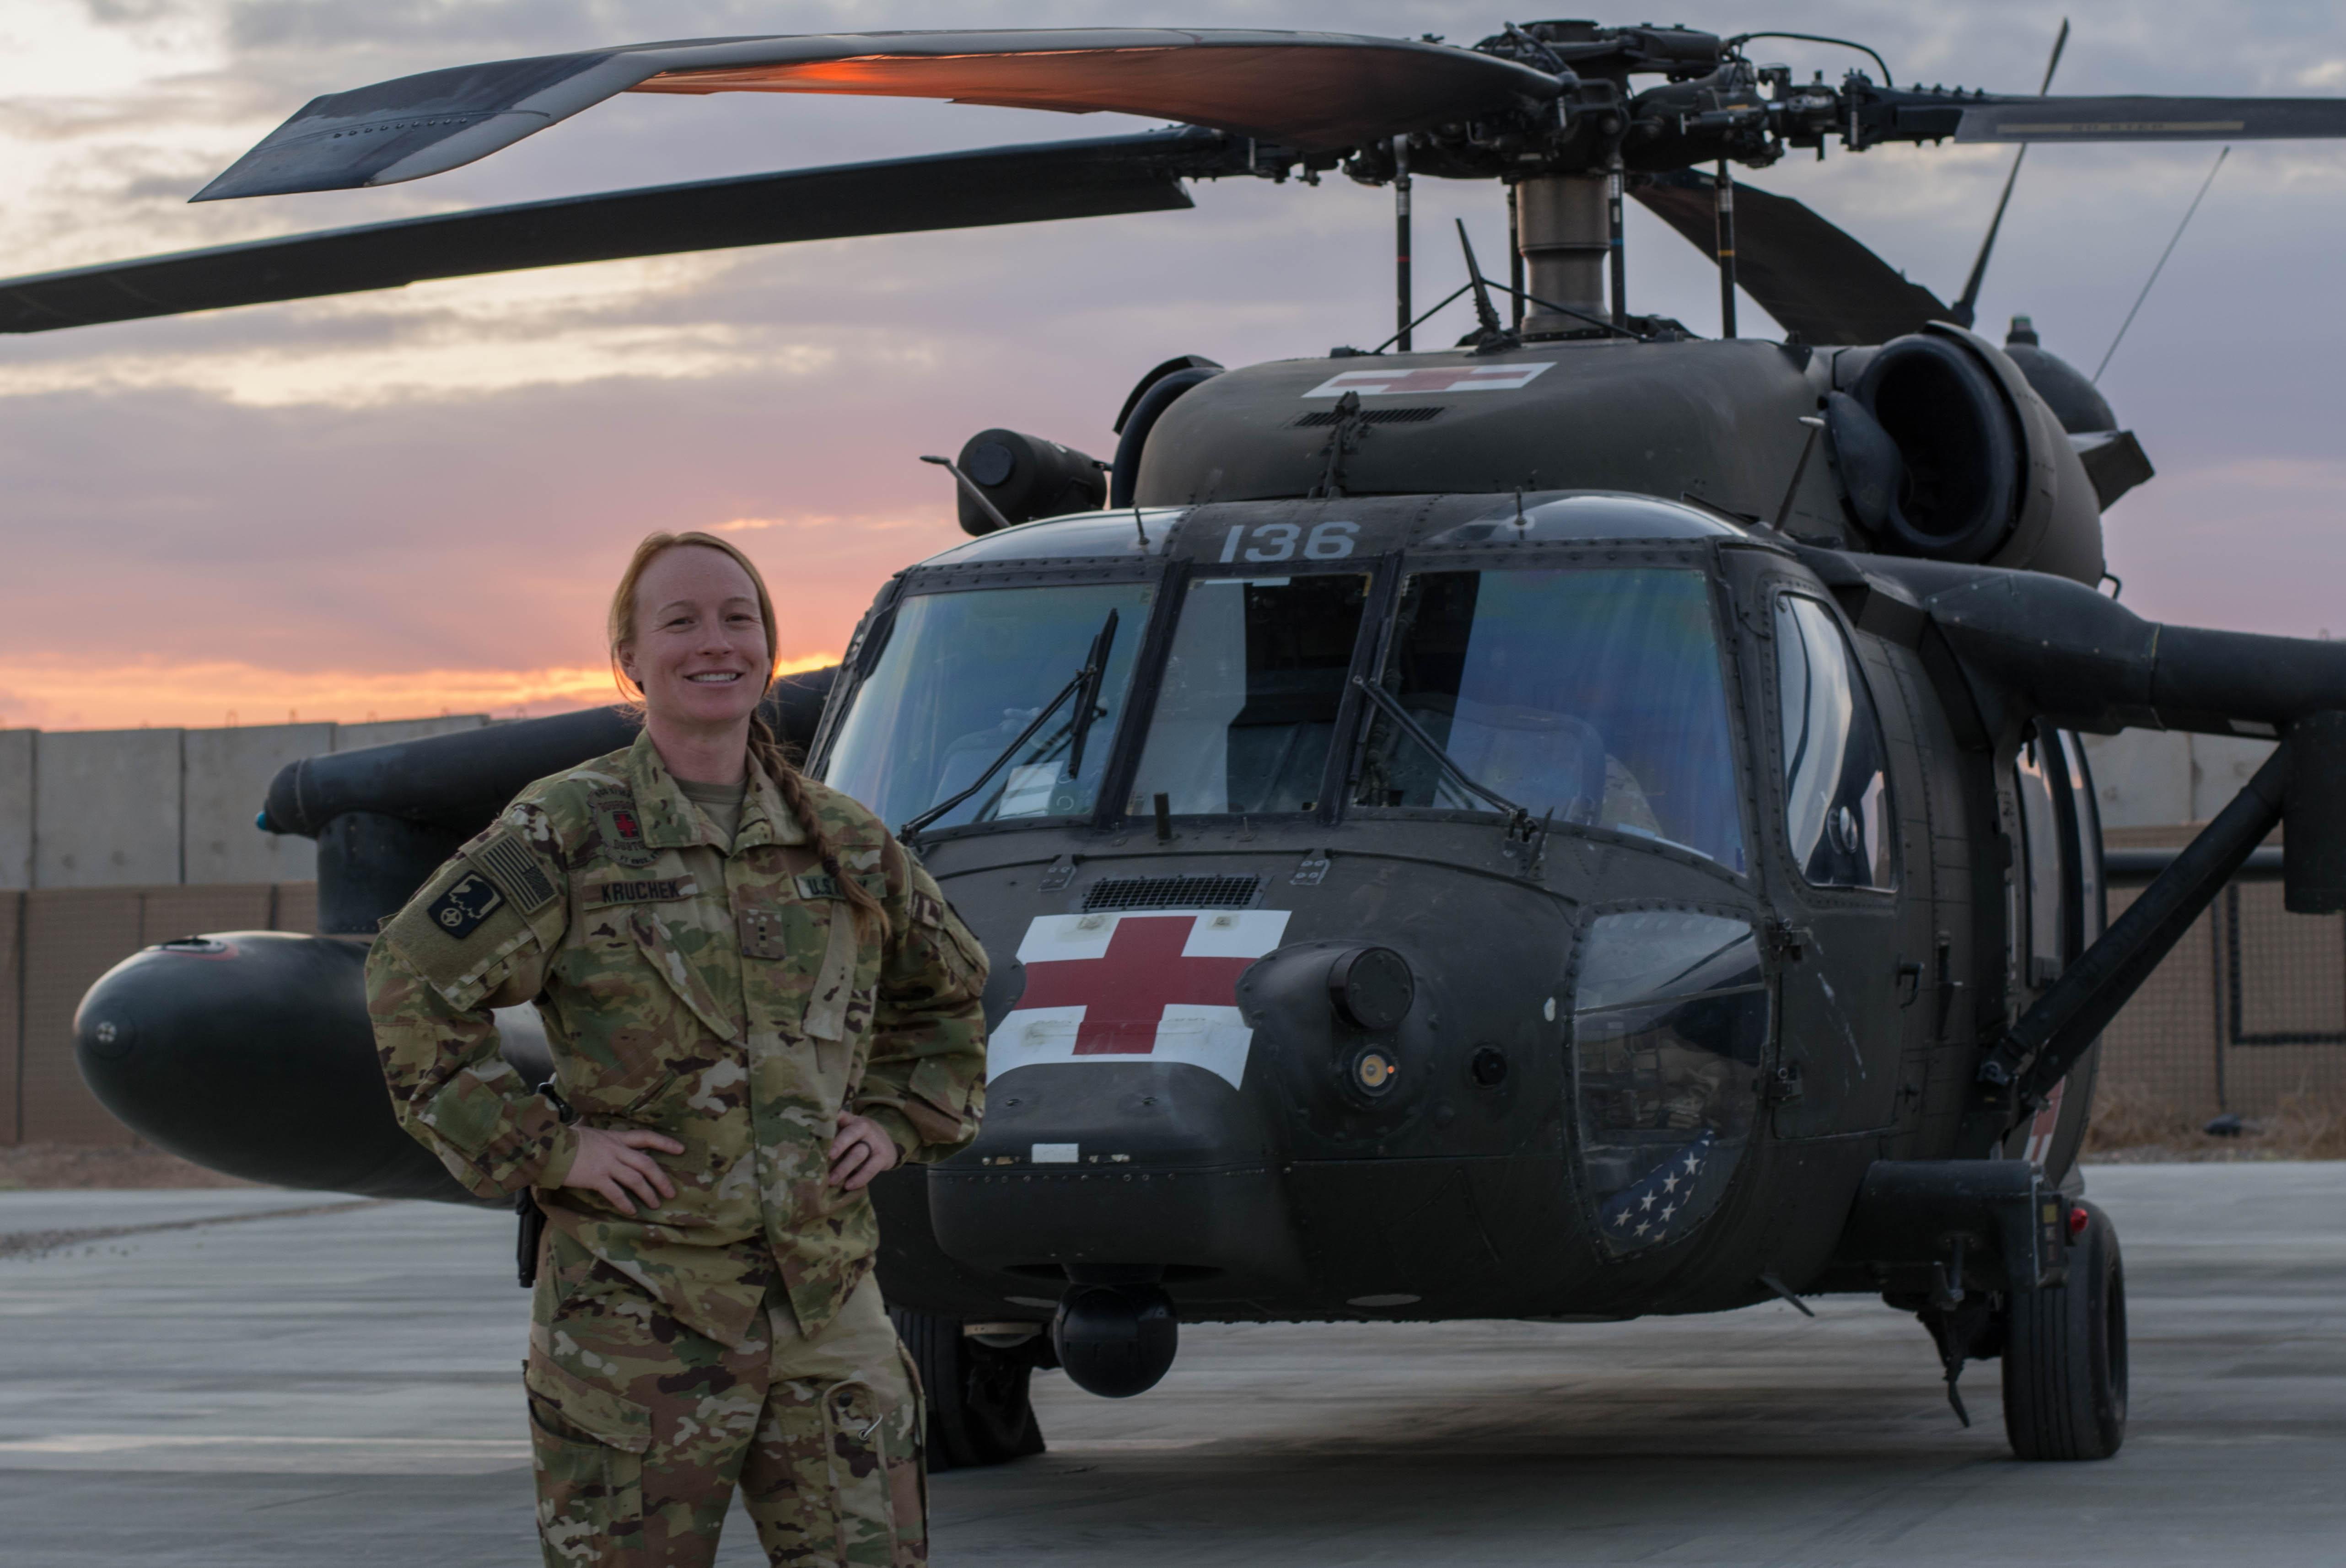 Captain Elizabeth Kruchek in front of military helicopter